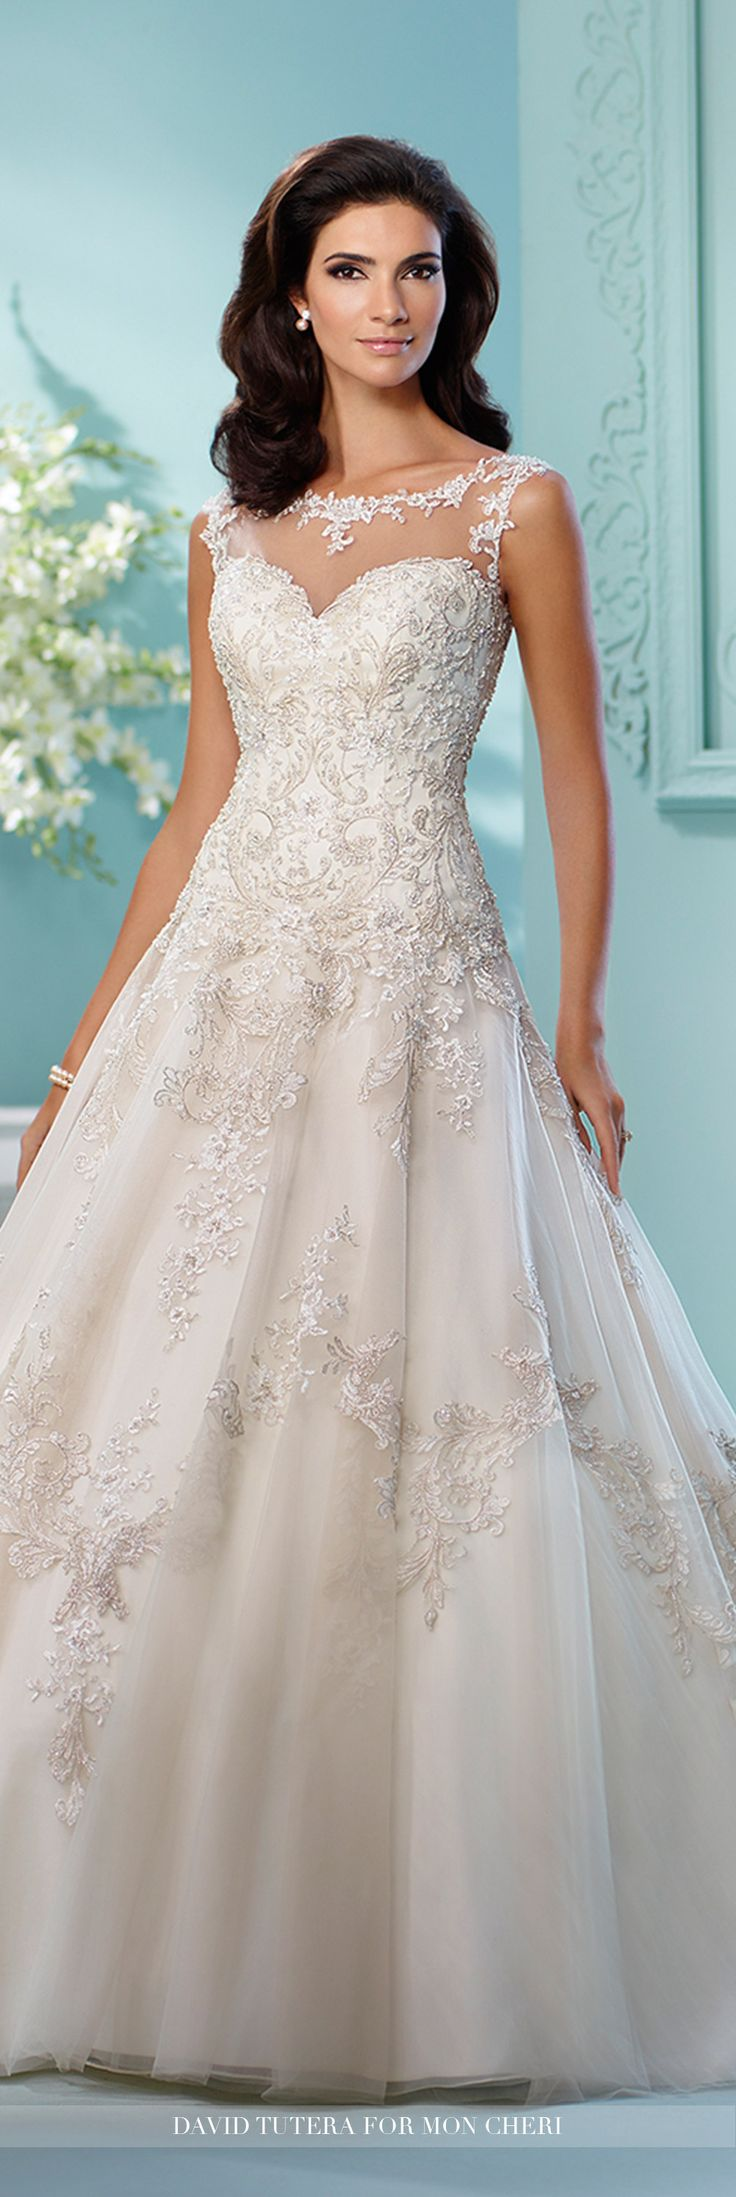 10 best images about david tutera for mon cheri on for David tutera wedding jewelry collection